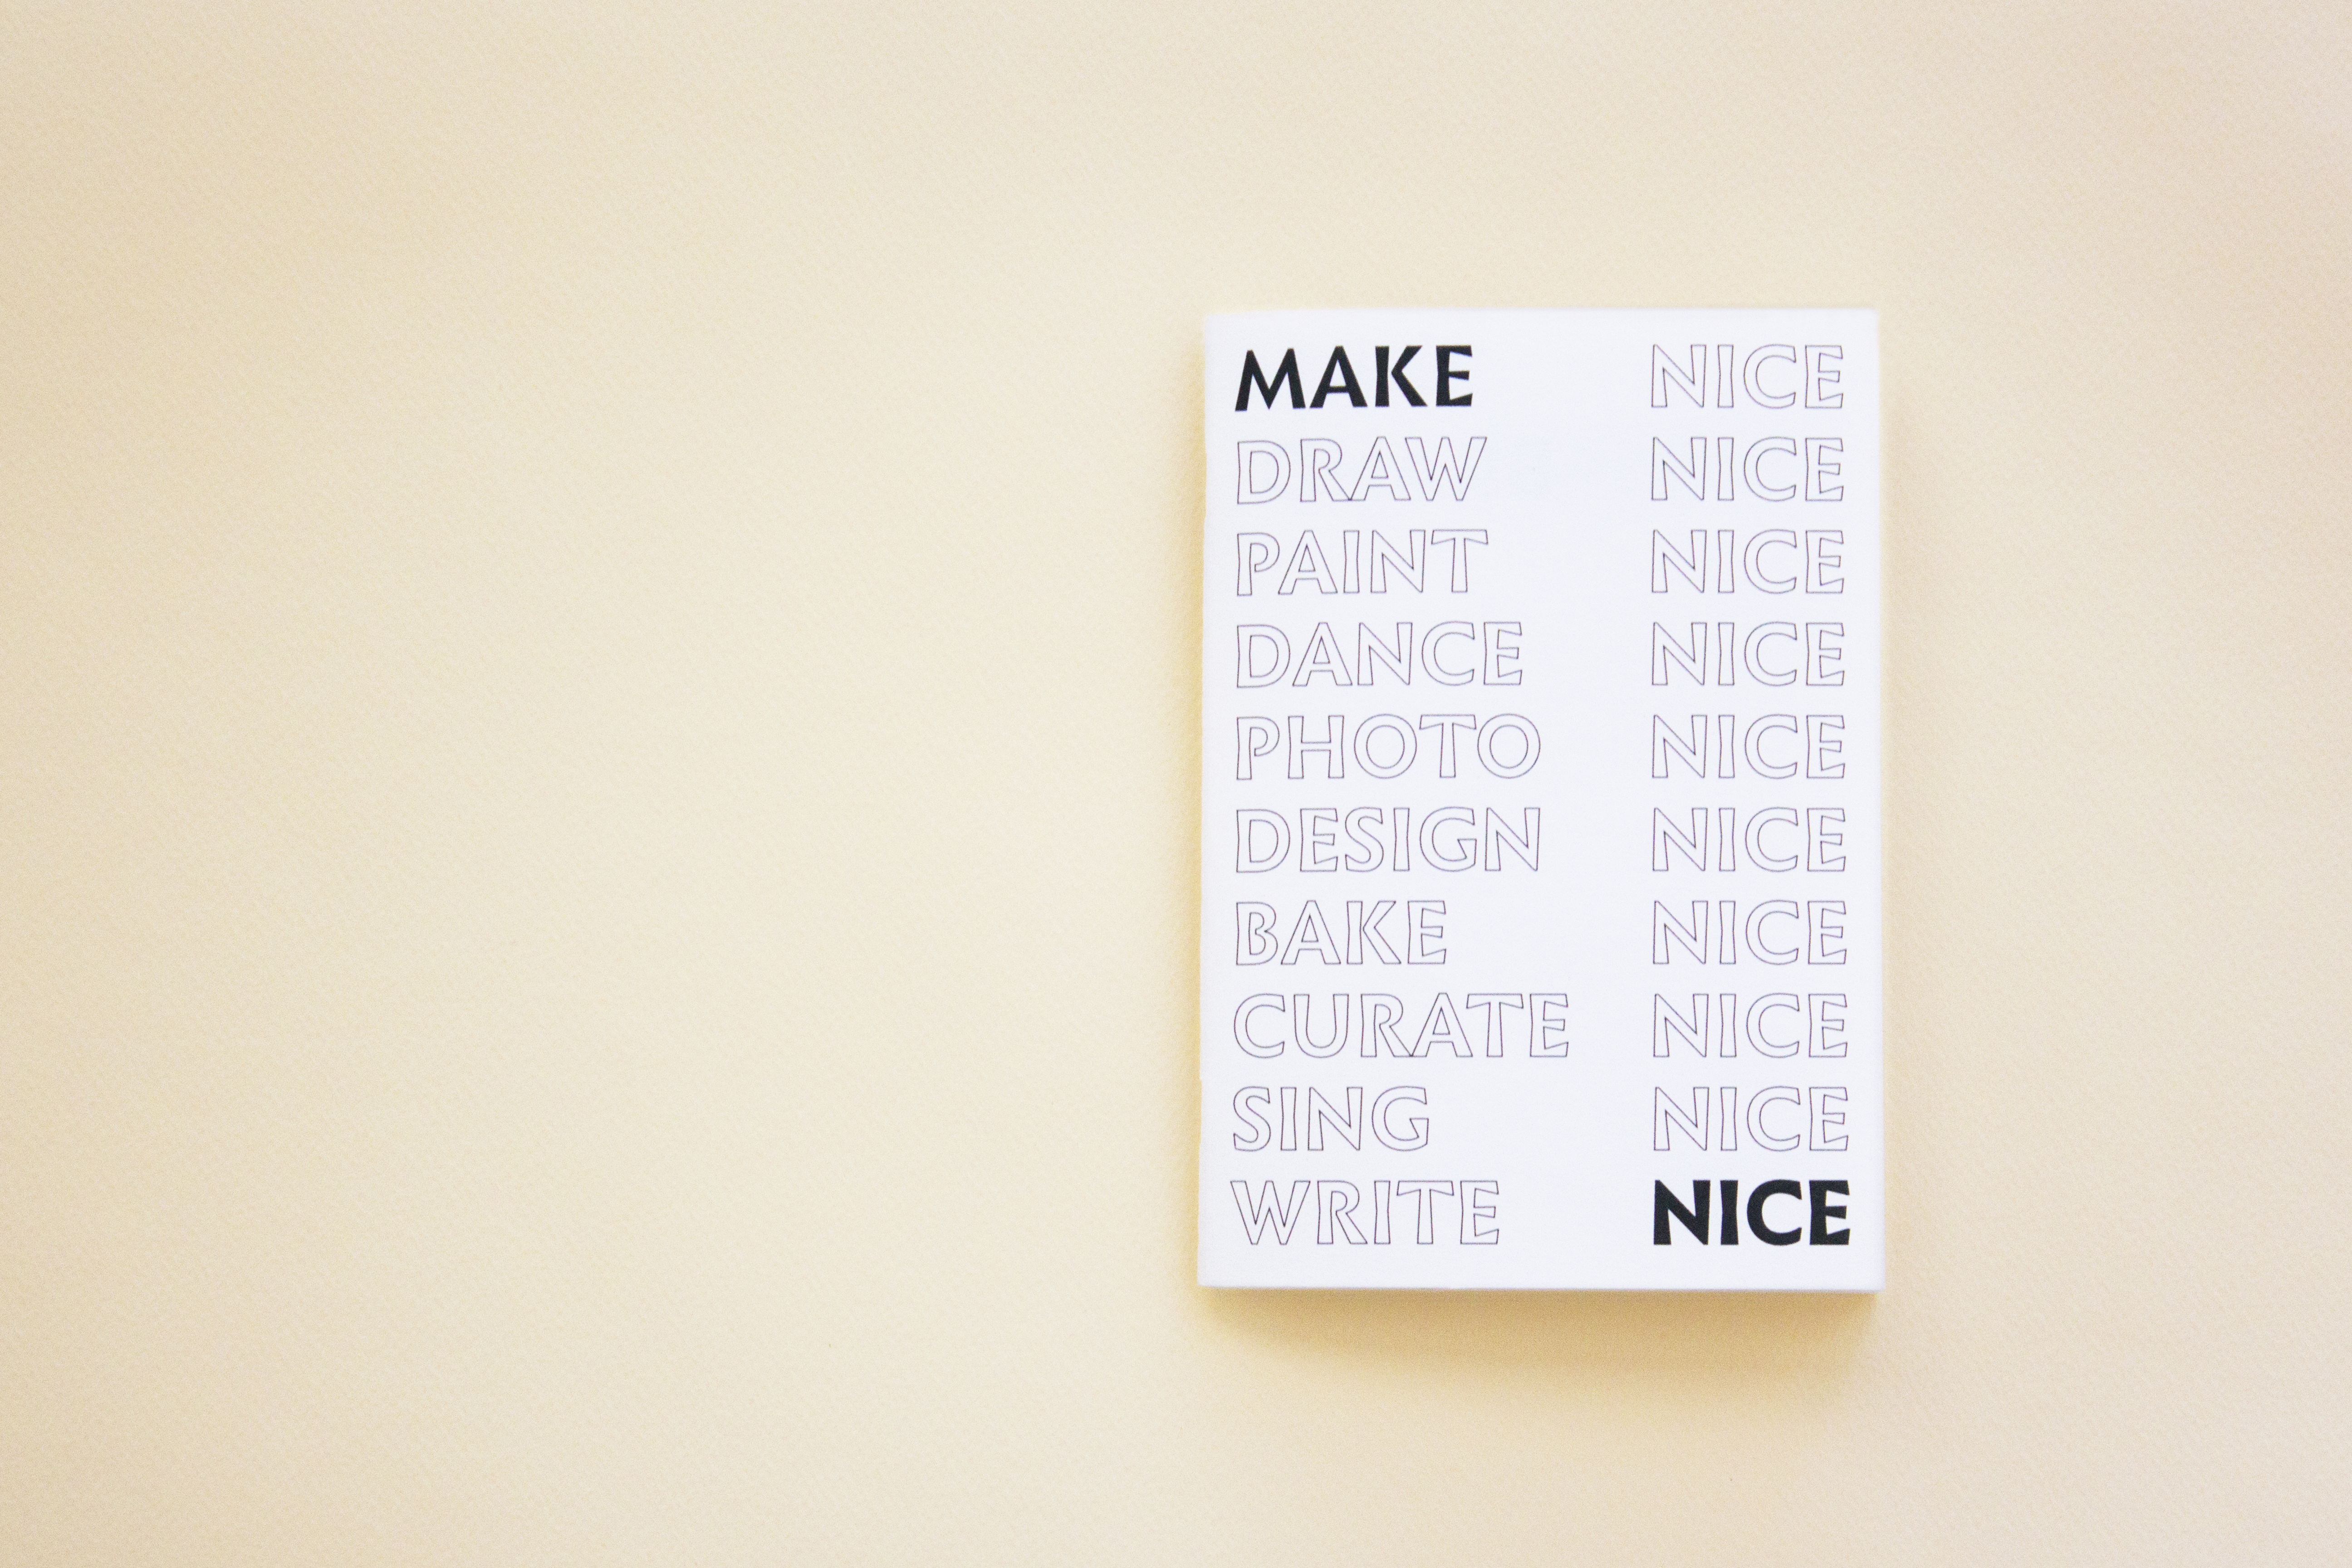 MAKE NICE SPREAD19